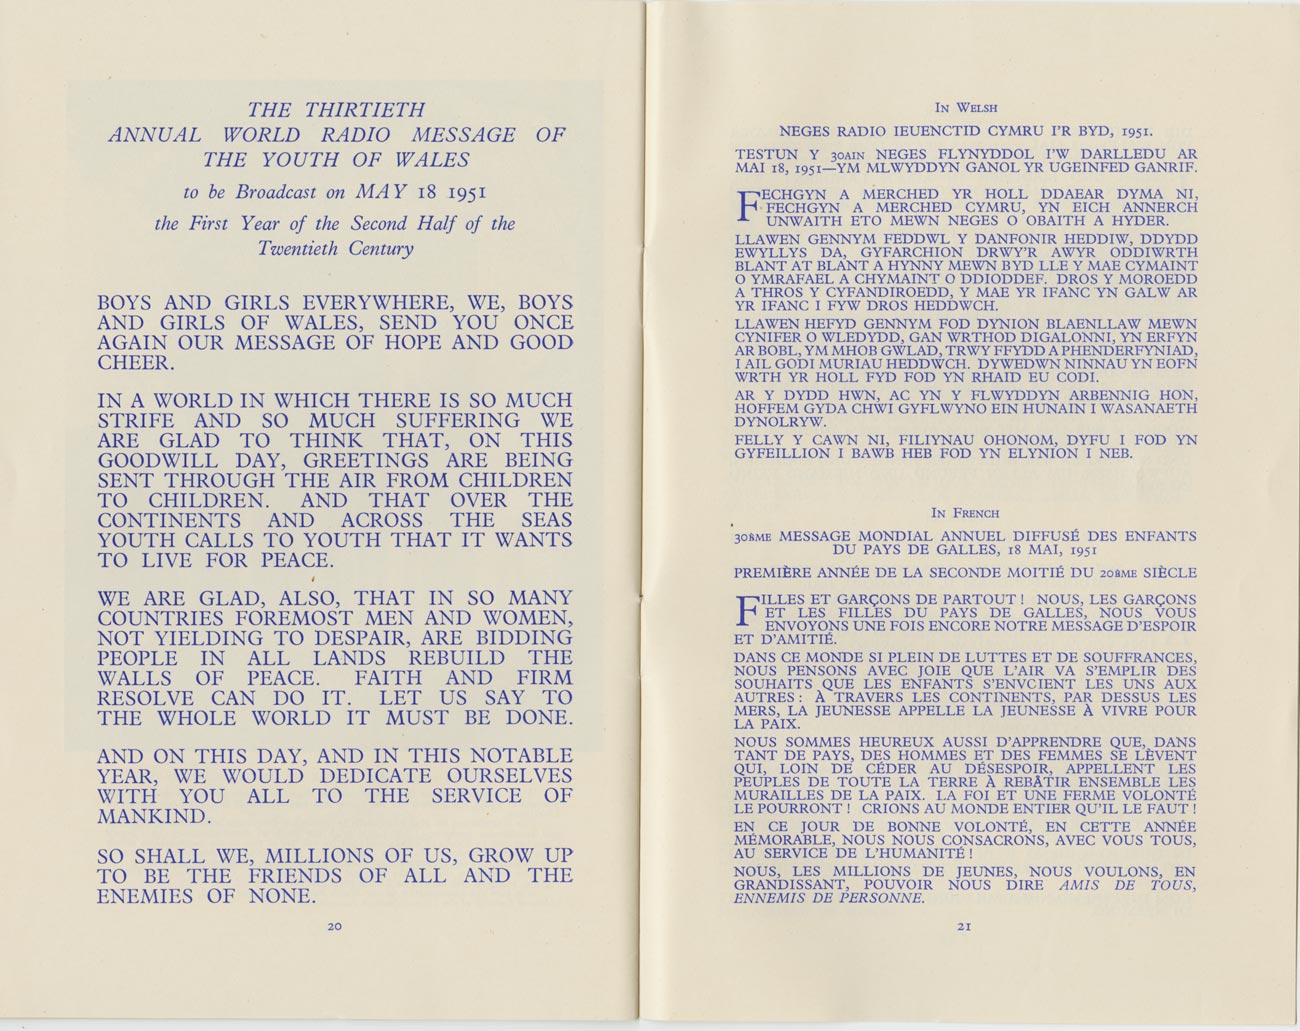 The Message Of Goodwill Of The Children Of Wales 1951